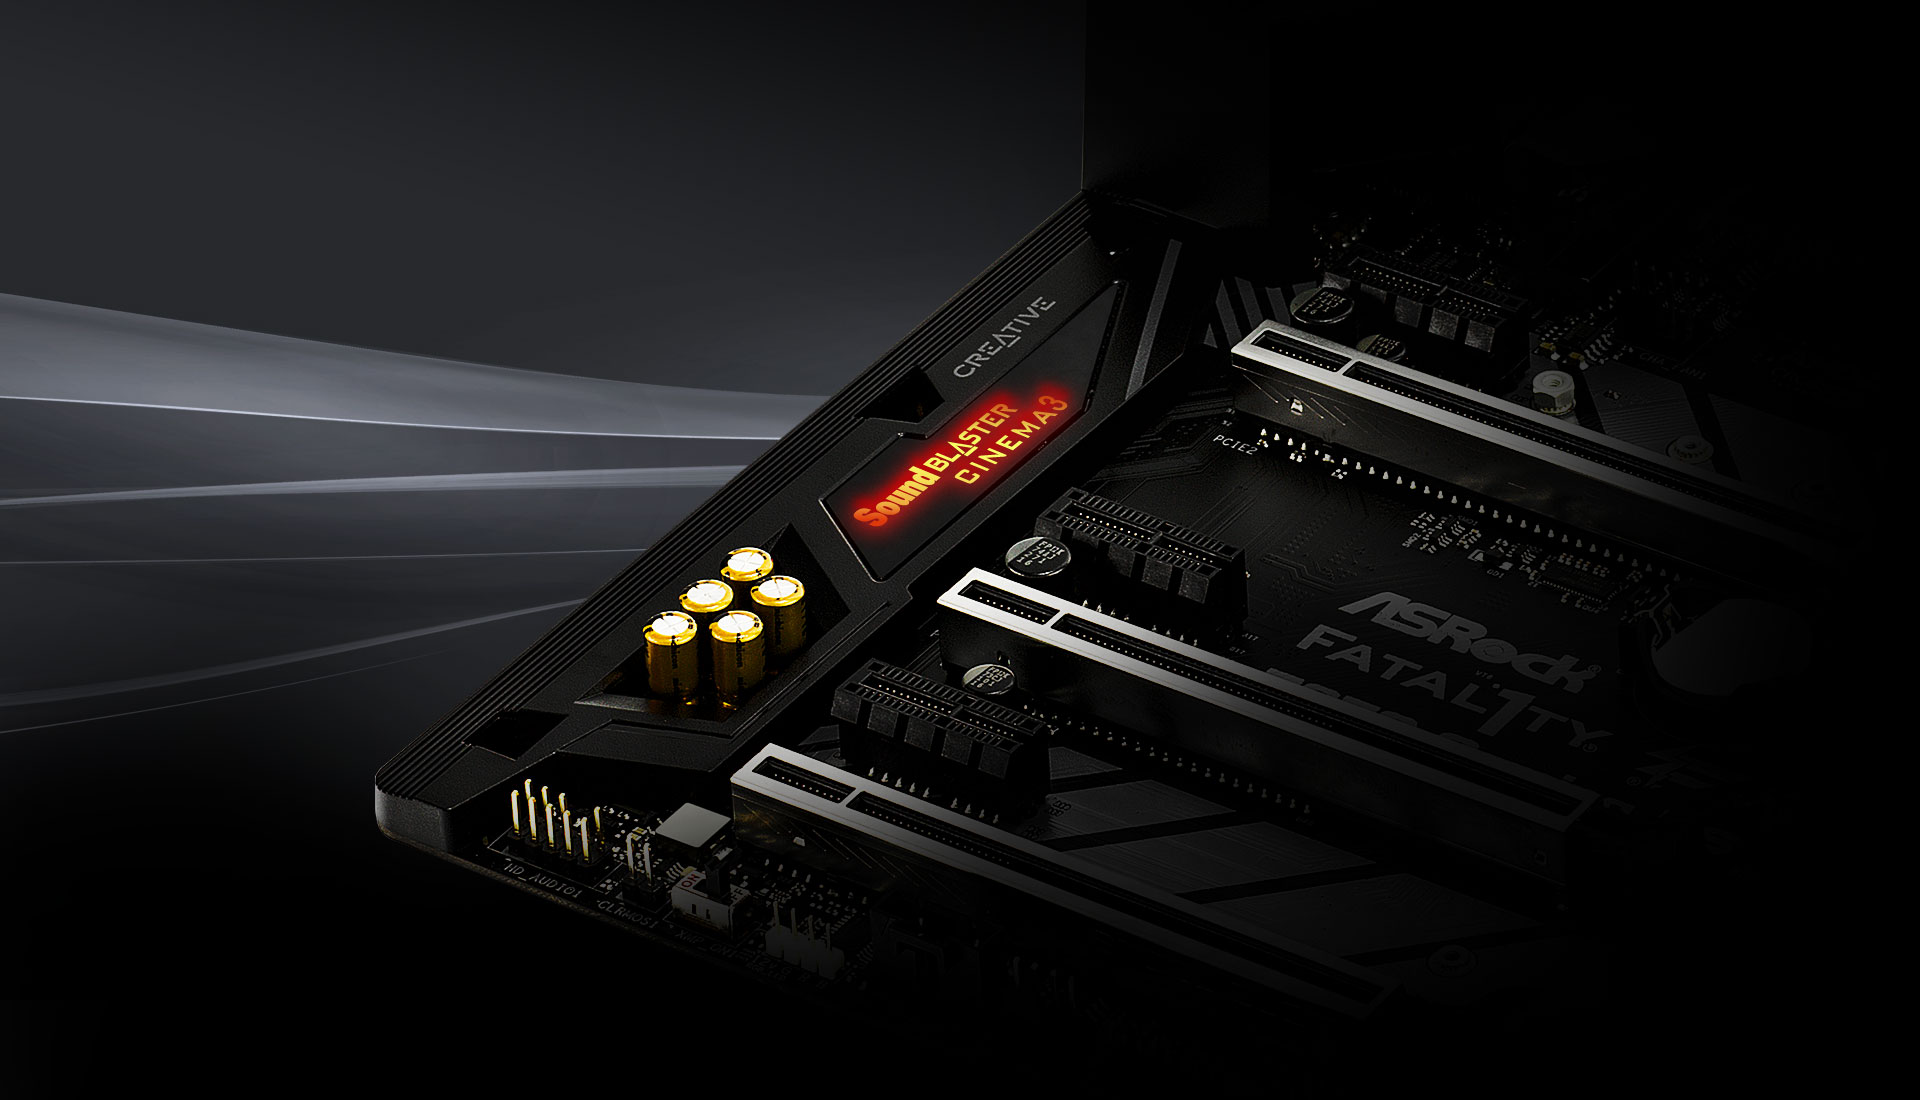 Asrock Fatal1ty Z370 Gaming K6 700 Watt Audio Amplifier And Switching Power Supply Enable 51 71 Surround Sound For An Additional Layer Of Transience To Your Listening Experience Even With Just A Pair Headphones Or Stereo Speakers